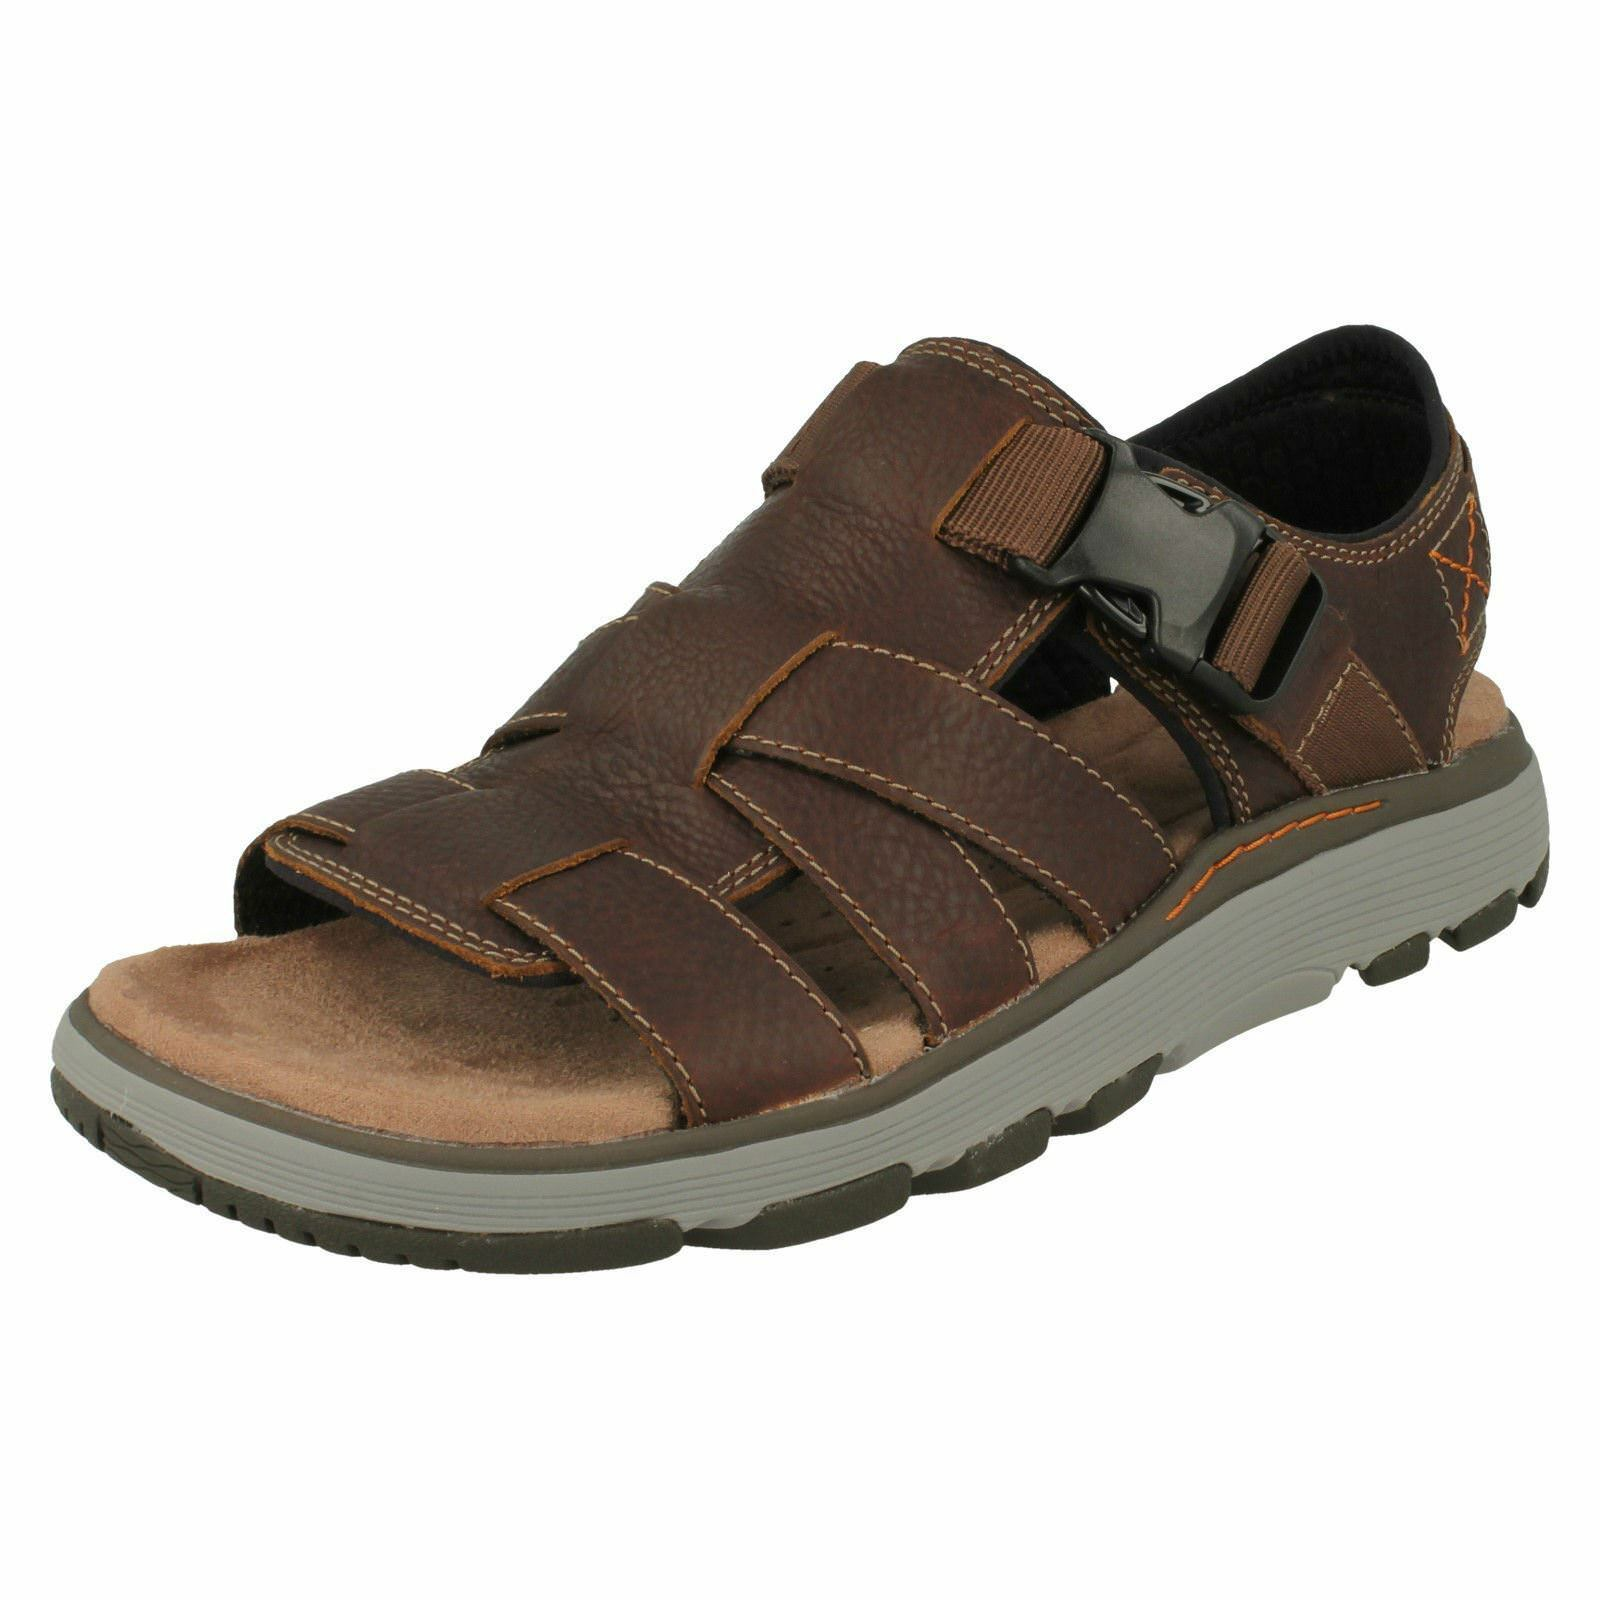 Mens Clarks Casual Strapped Sandals Un Trek Cove